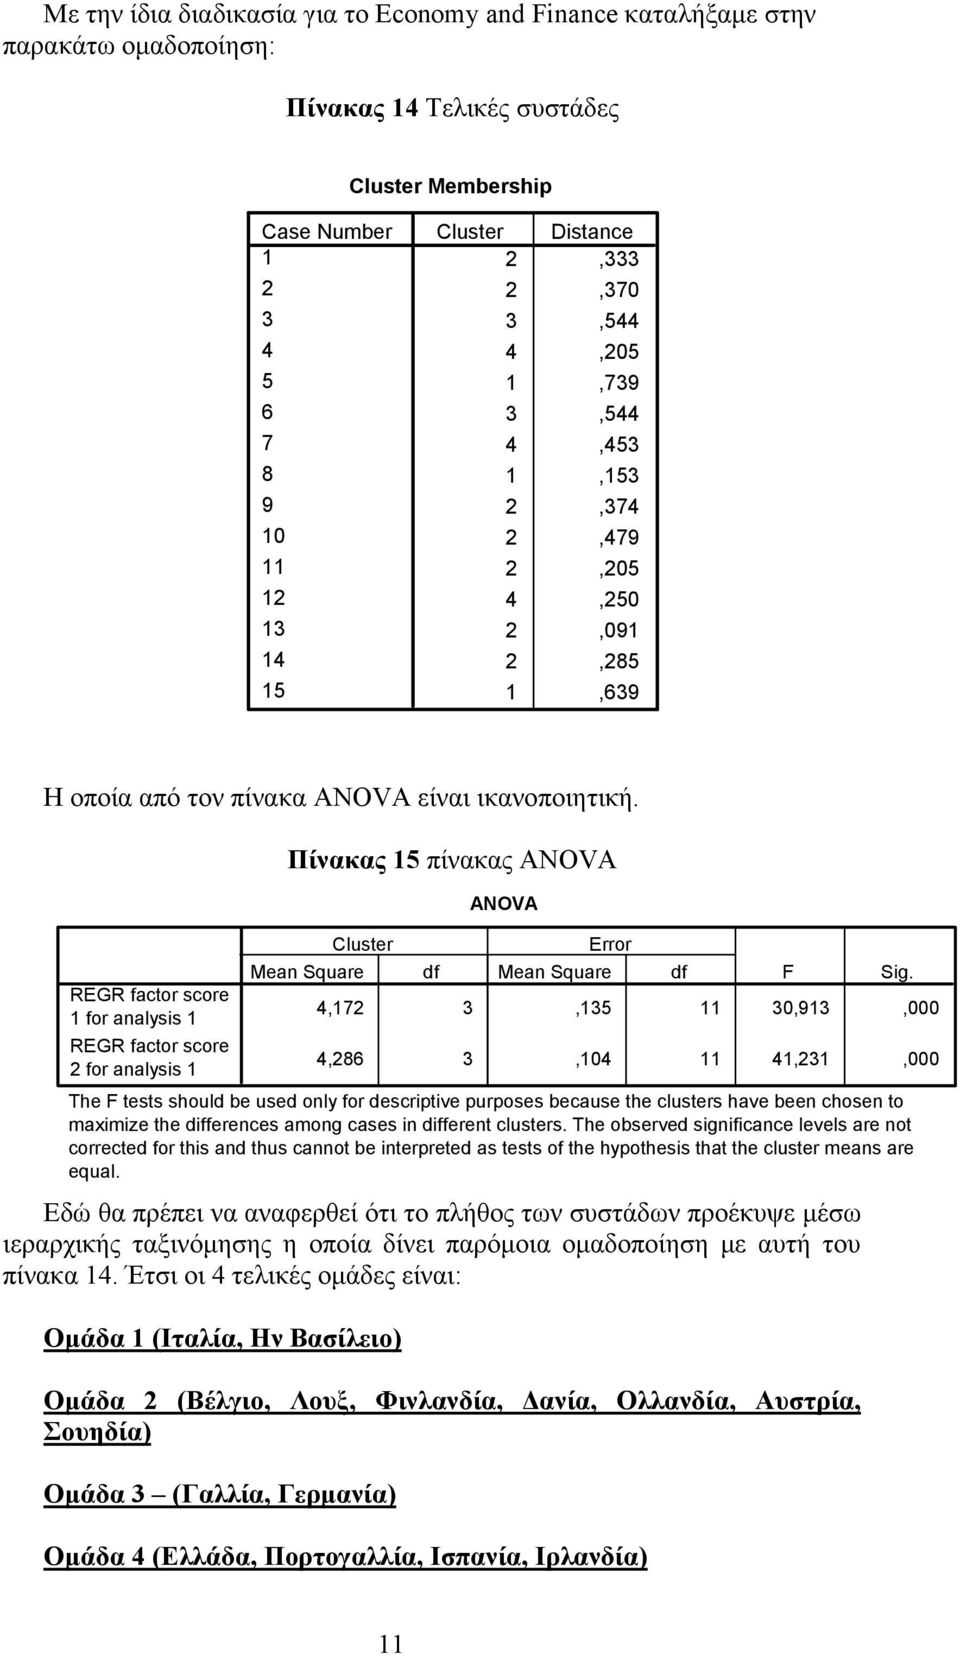 for analysis for analysis Πίνακας 5 πίνακας ANOVA Cluster Mean Square df ANOVA Mean Square 4,7,5 0,9,000 4,86,04 4,,000 The F tests should be used only for descriptive purposes because the clusters